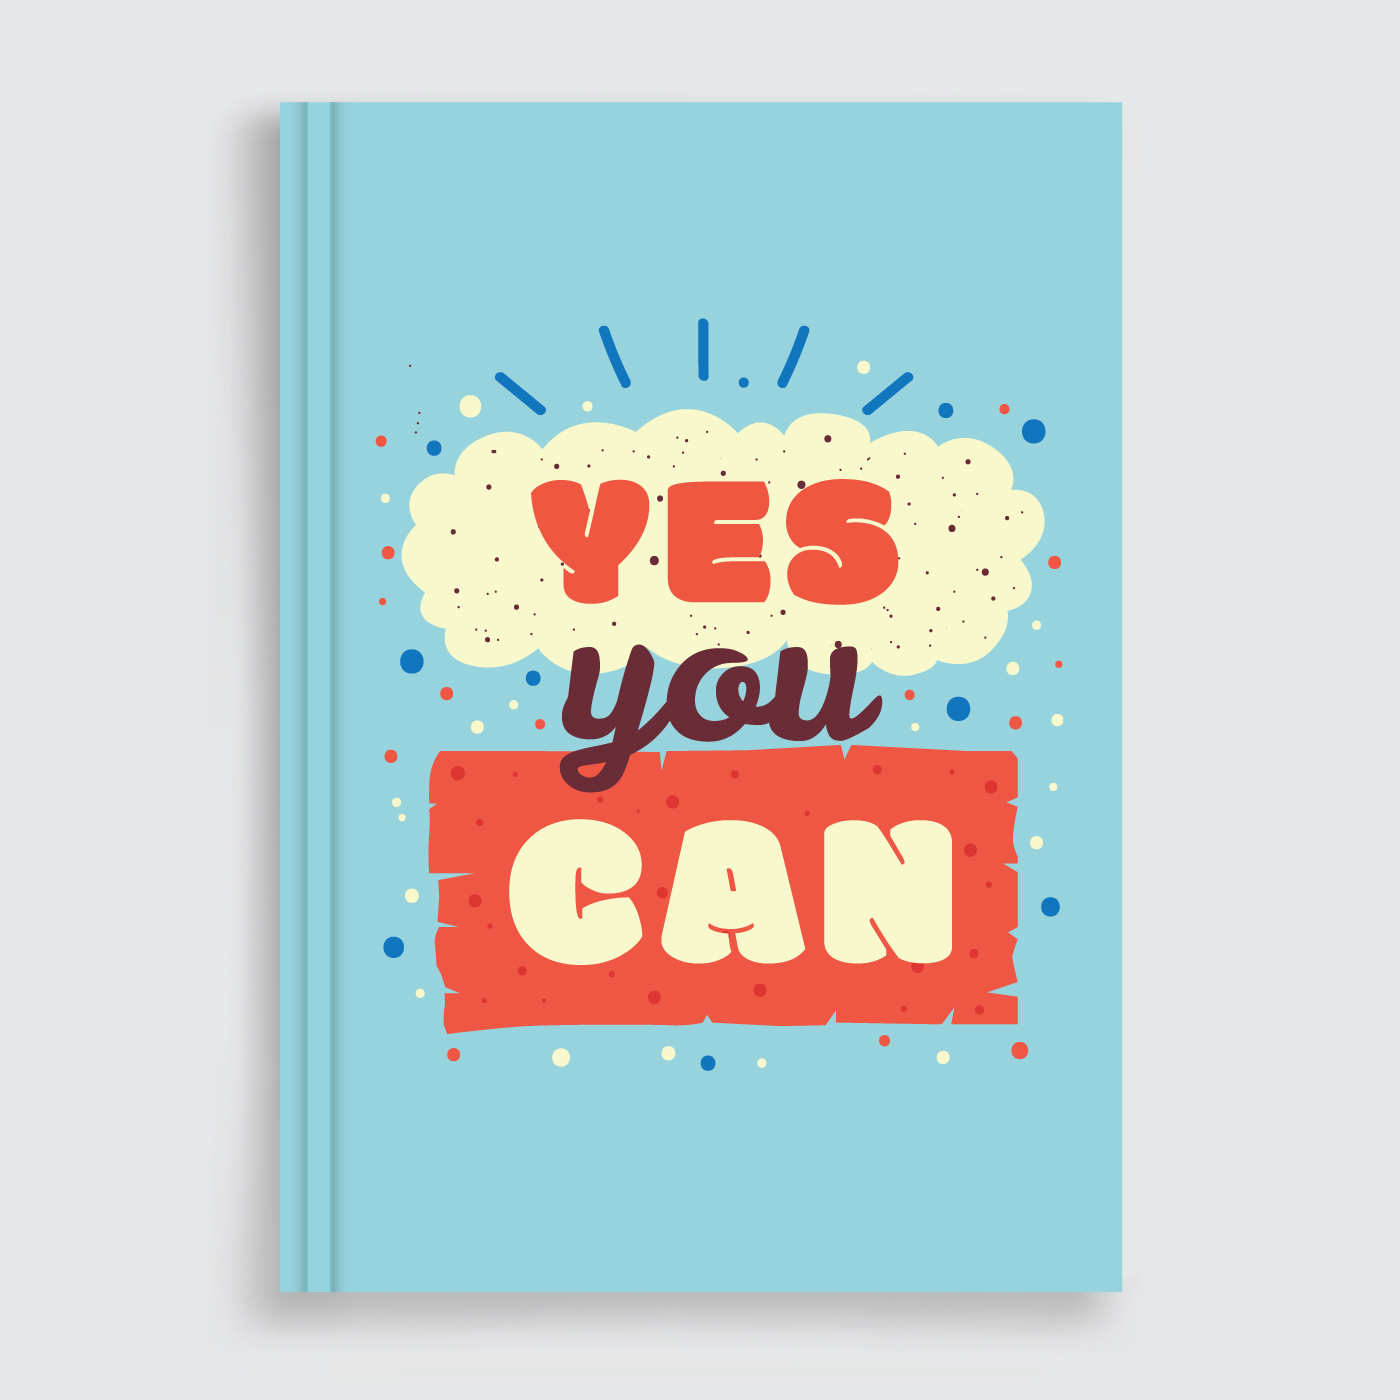 Creative Confidence Book Cover : Motivational book cover vector download free art